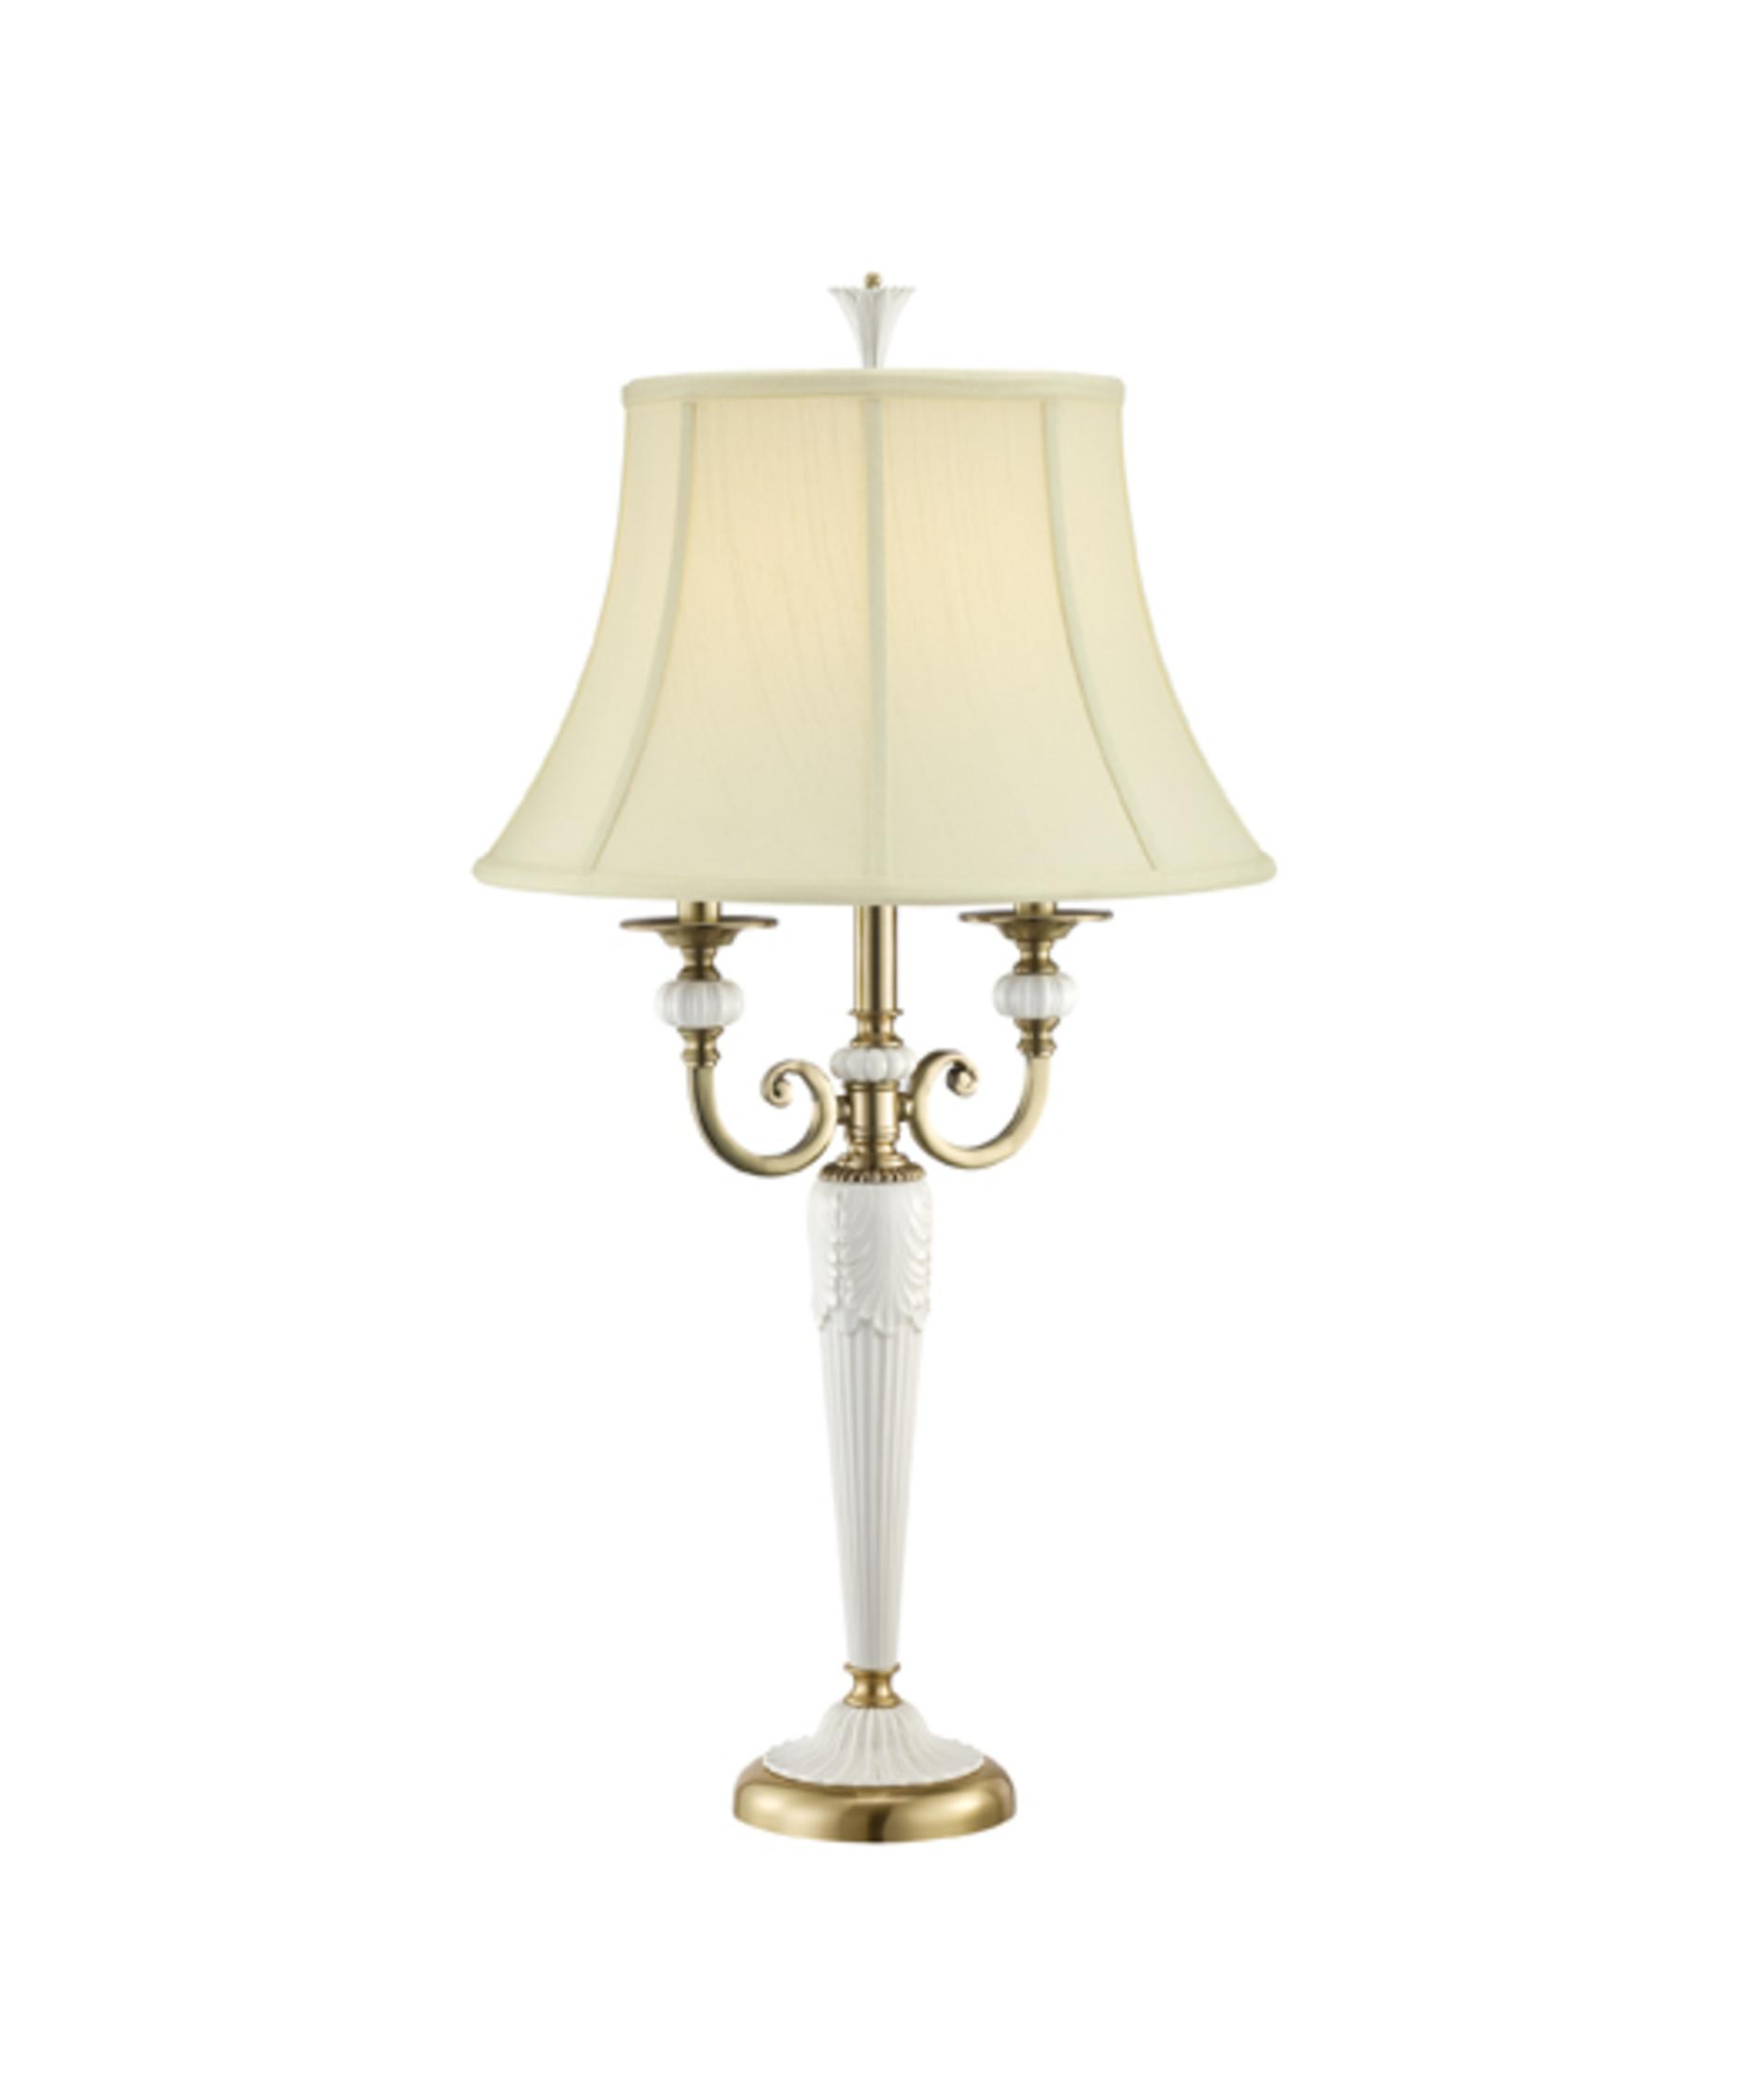 Shown In Burnished Brass Finish And Beige Fabric Shade